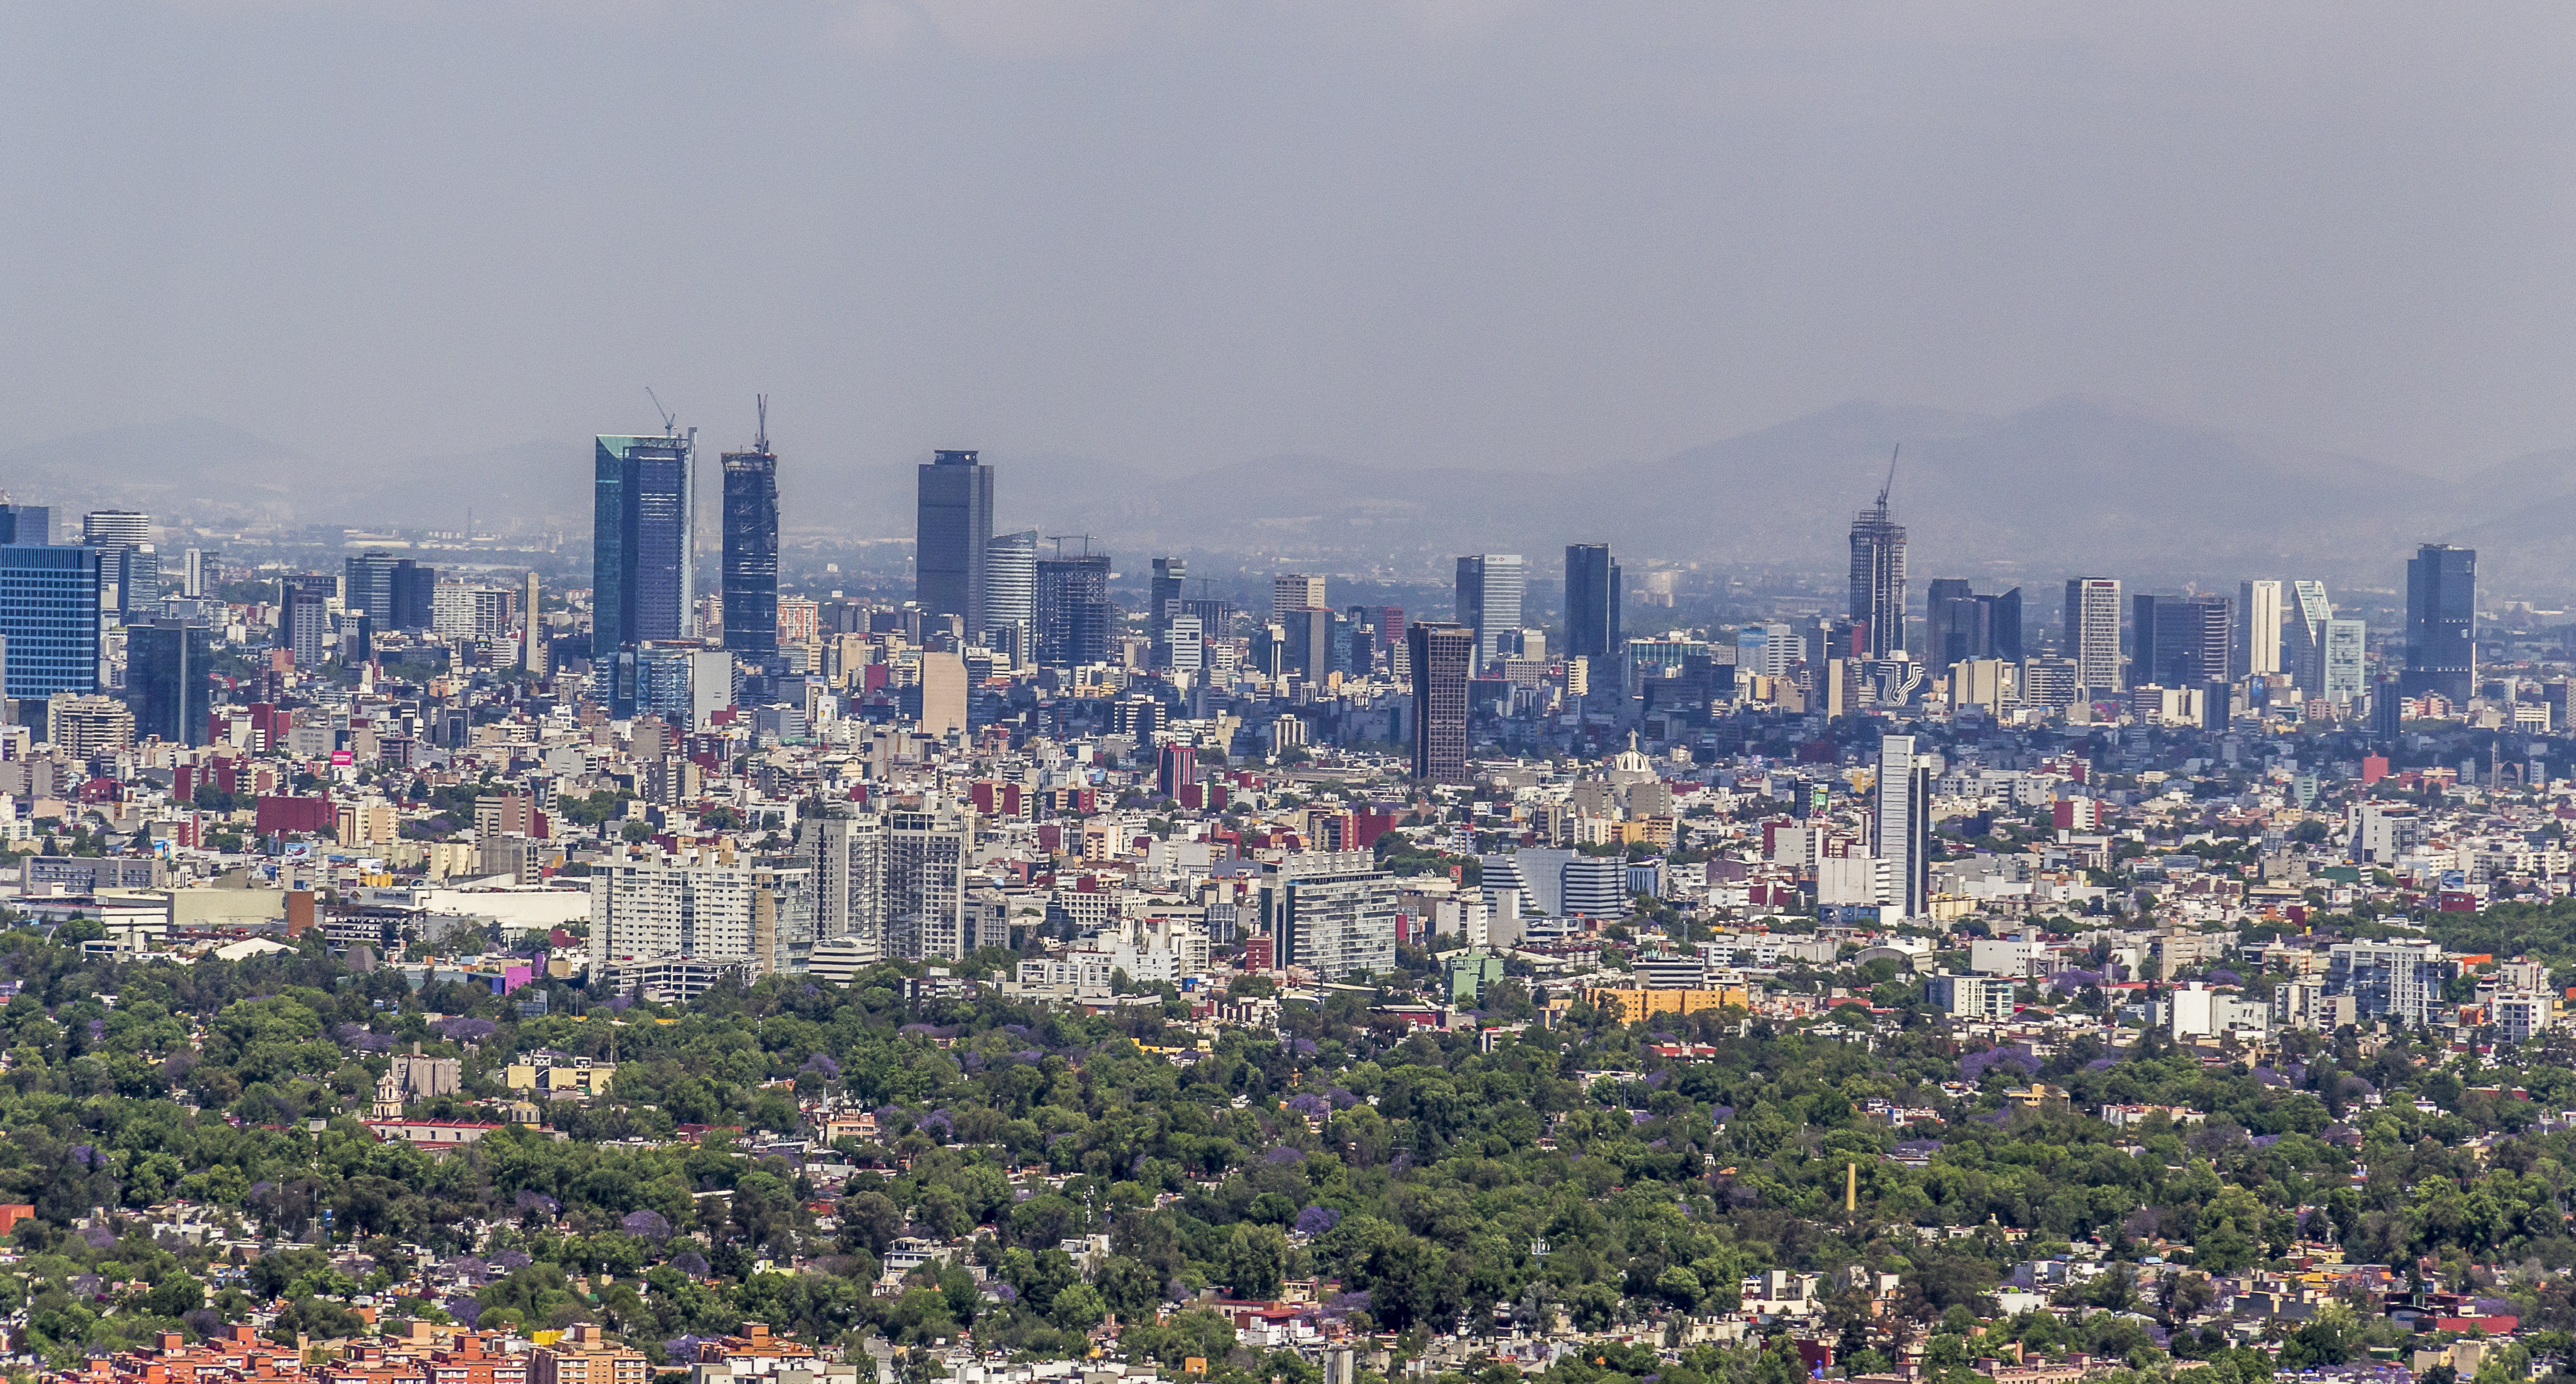 Mexico City is kicking its parking addiction. Can U.S. cities do the same?